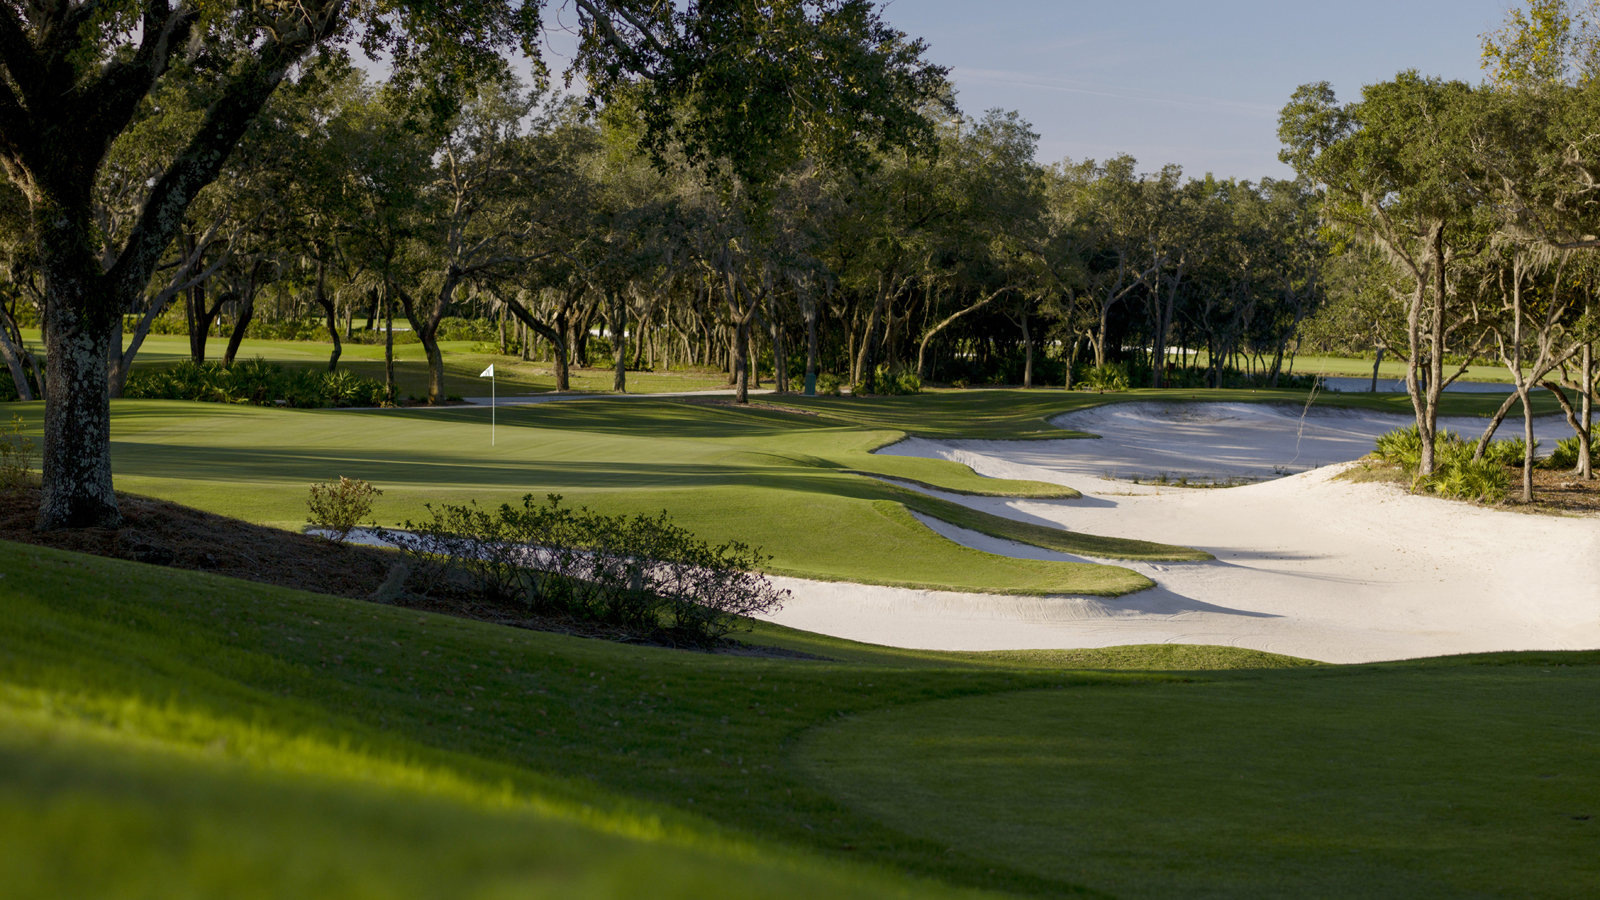 tranquilo golf course 2016 diamond resorts invitational Four Seasons Resort Orlando at Walt Disney World